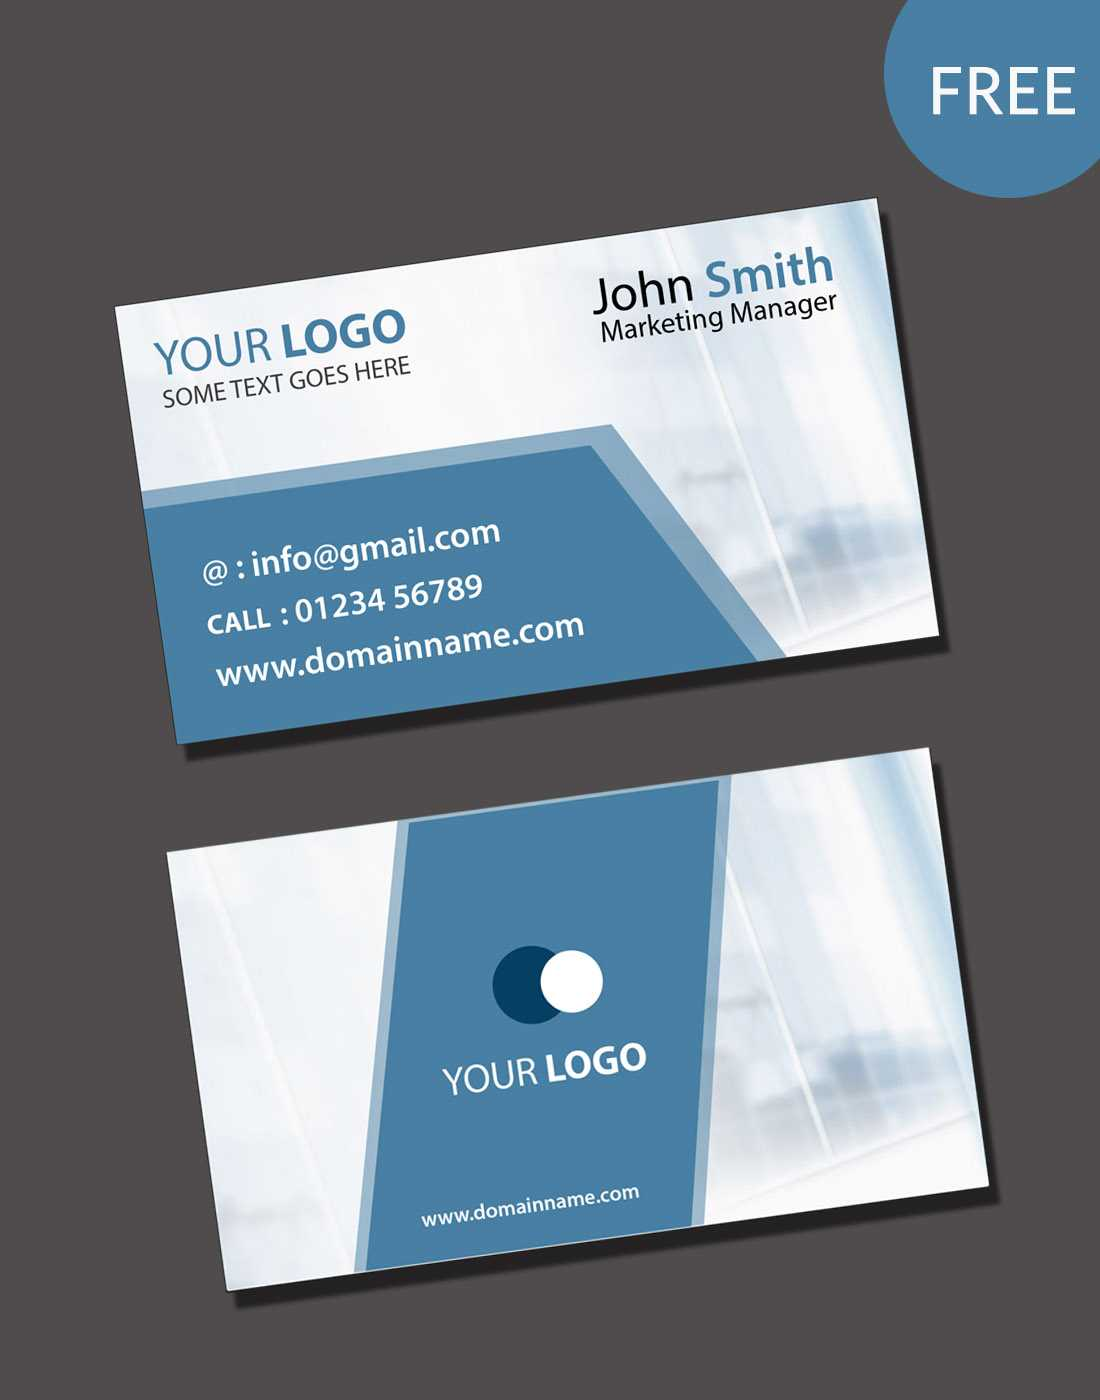 012 Template Ideas Visiting Card Psd Free Business Regarding Visiting Card Templates Download